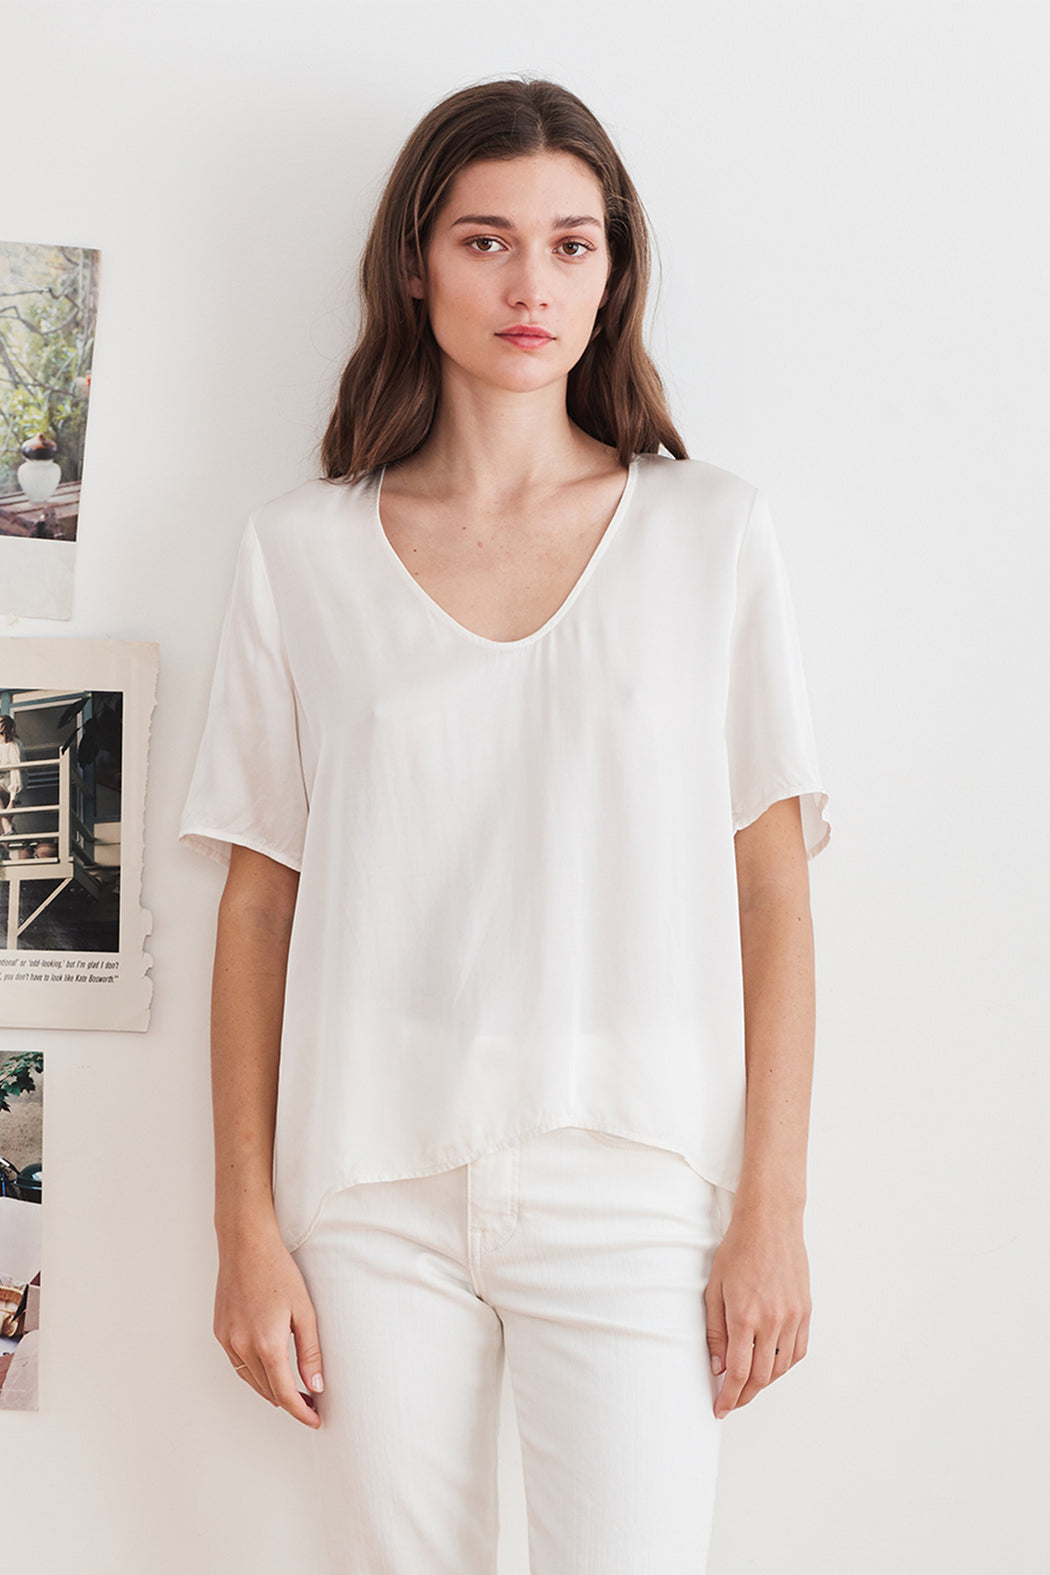 Velvet by Graham & Spencer Tita Satin Viscose Scoop Neck Top in Cream